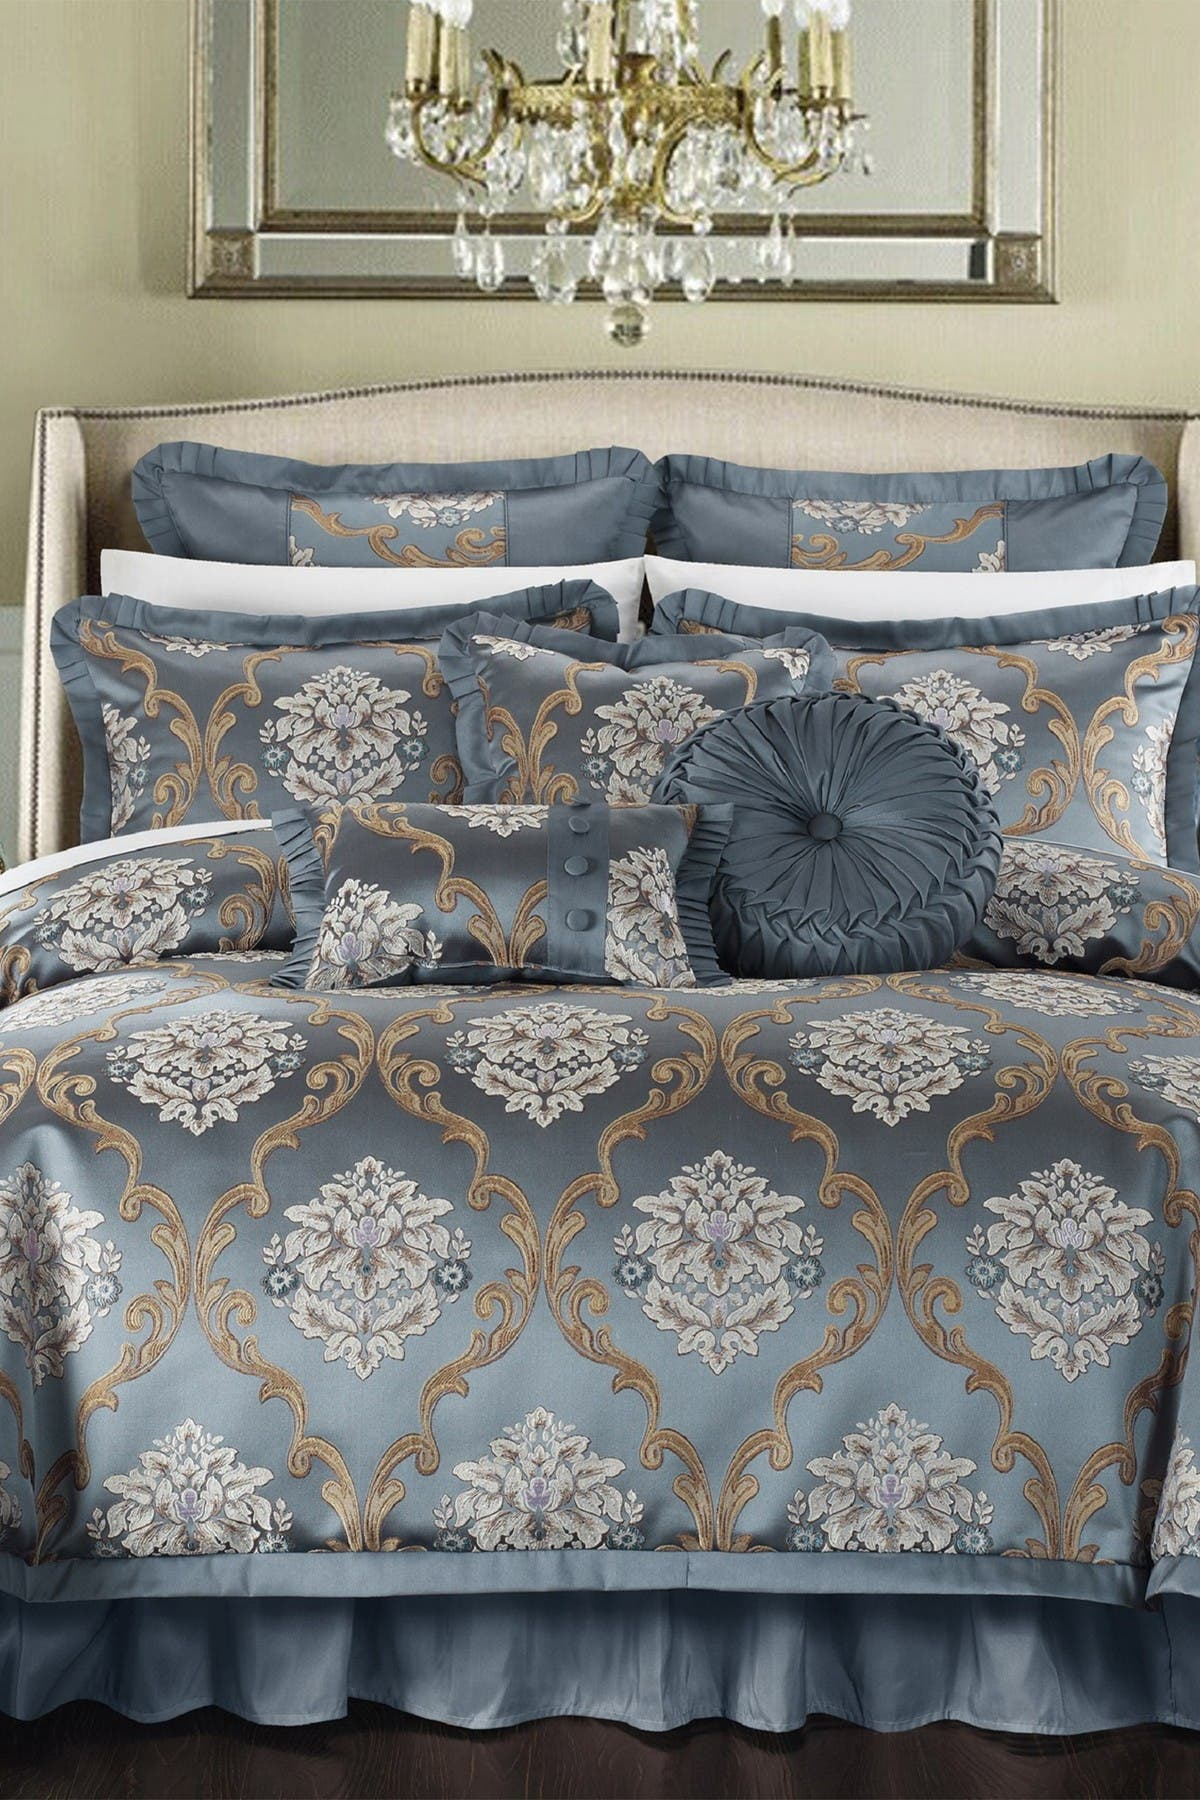 Chic Home Bedding Queen Marchesi Decorator Upholstery Quality Jacquard Scroll Fabric Complete Master Bedroom Comforter 9 Piece Set Blue Nordstrom Rack